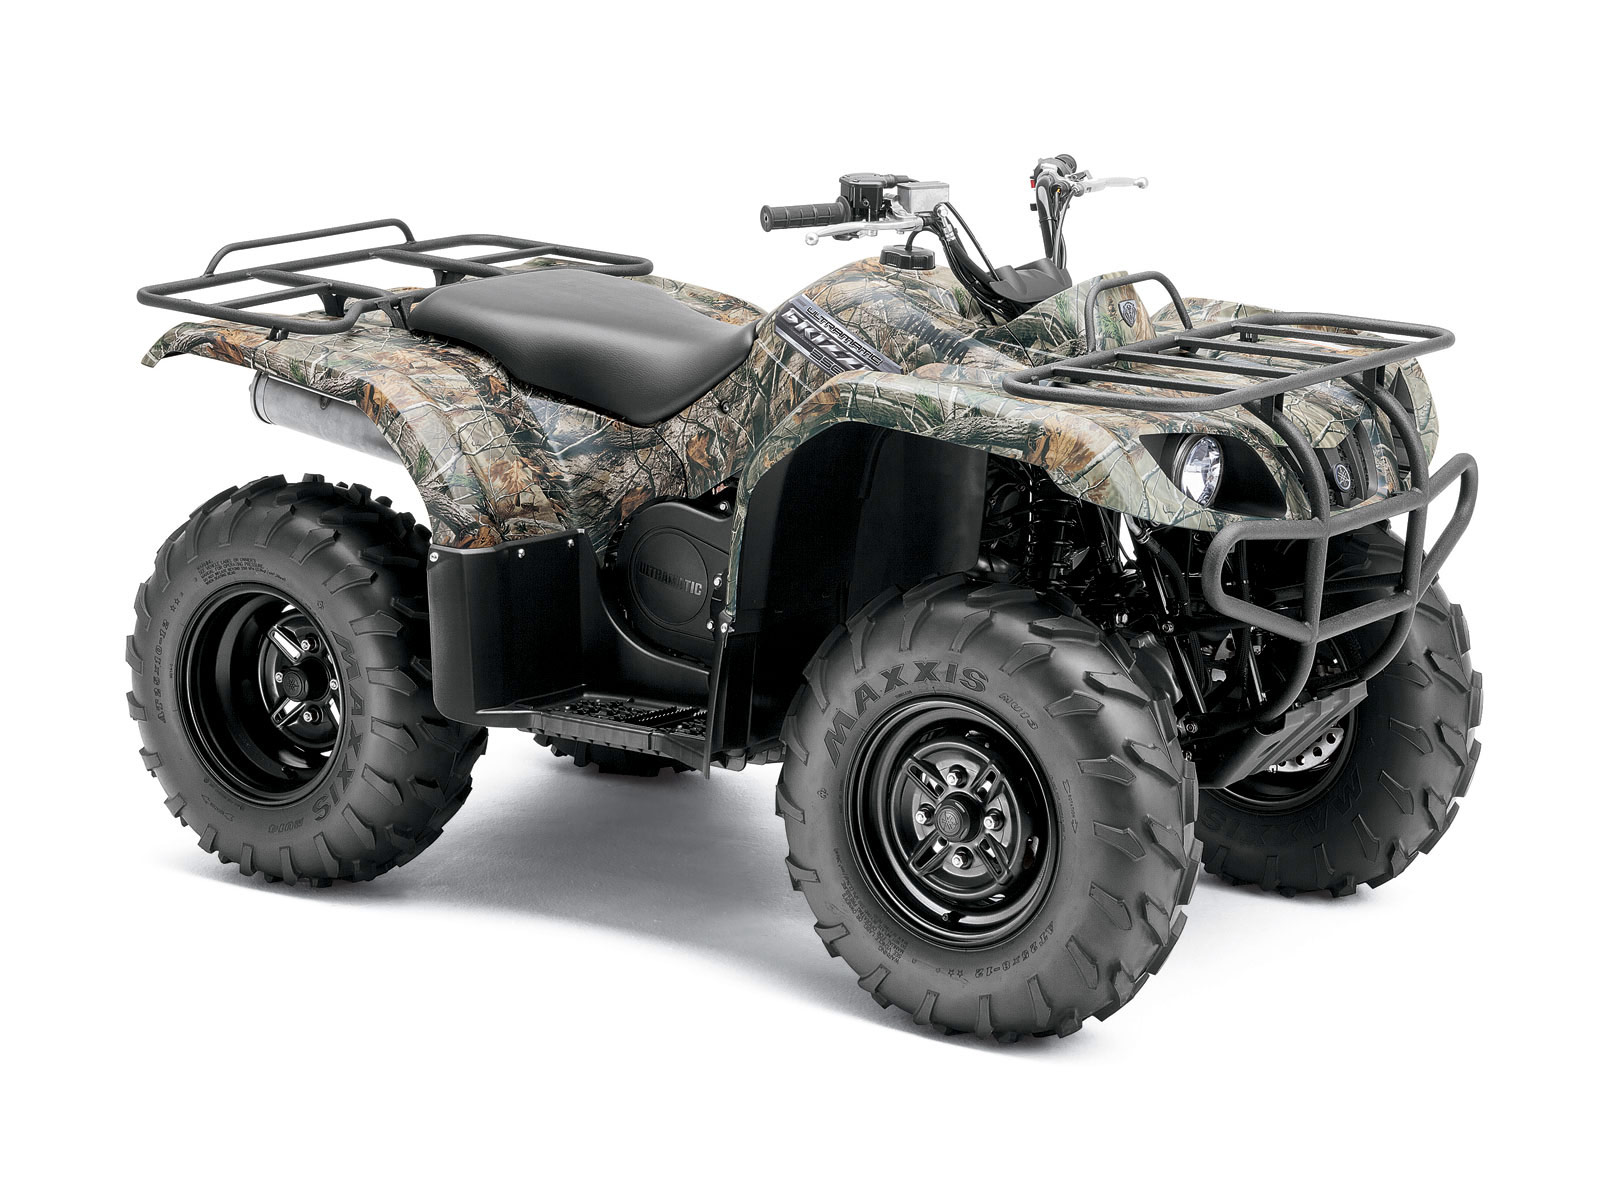 2012 yamaha grizzly 350 auto 4x4 atv pictures for Yamaha grizzly atv